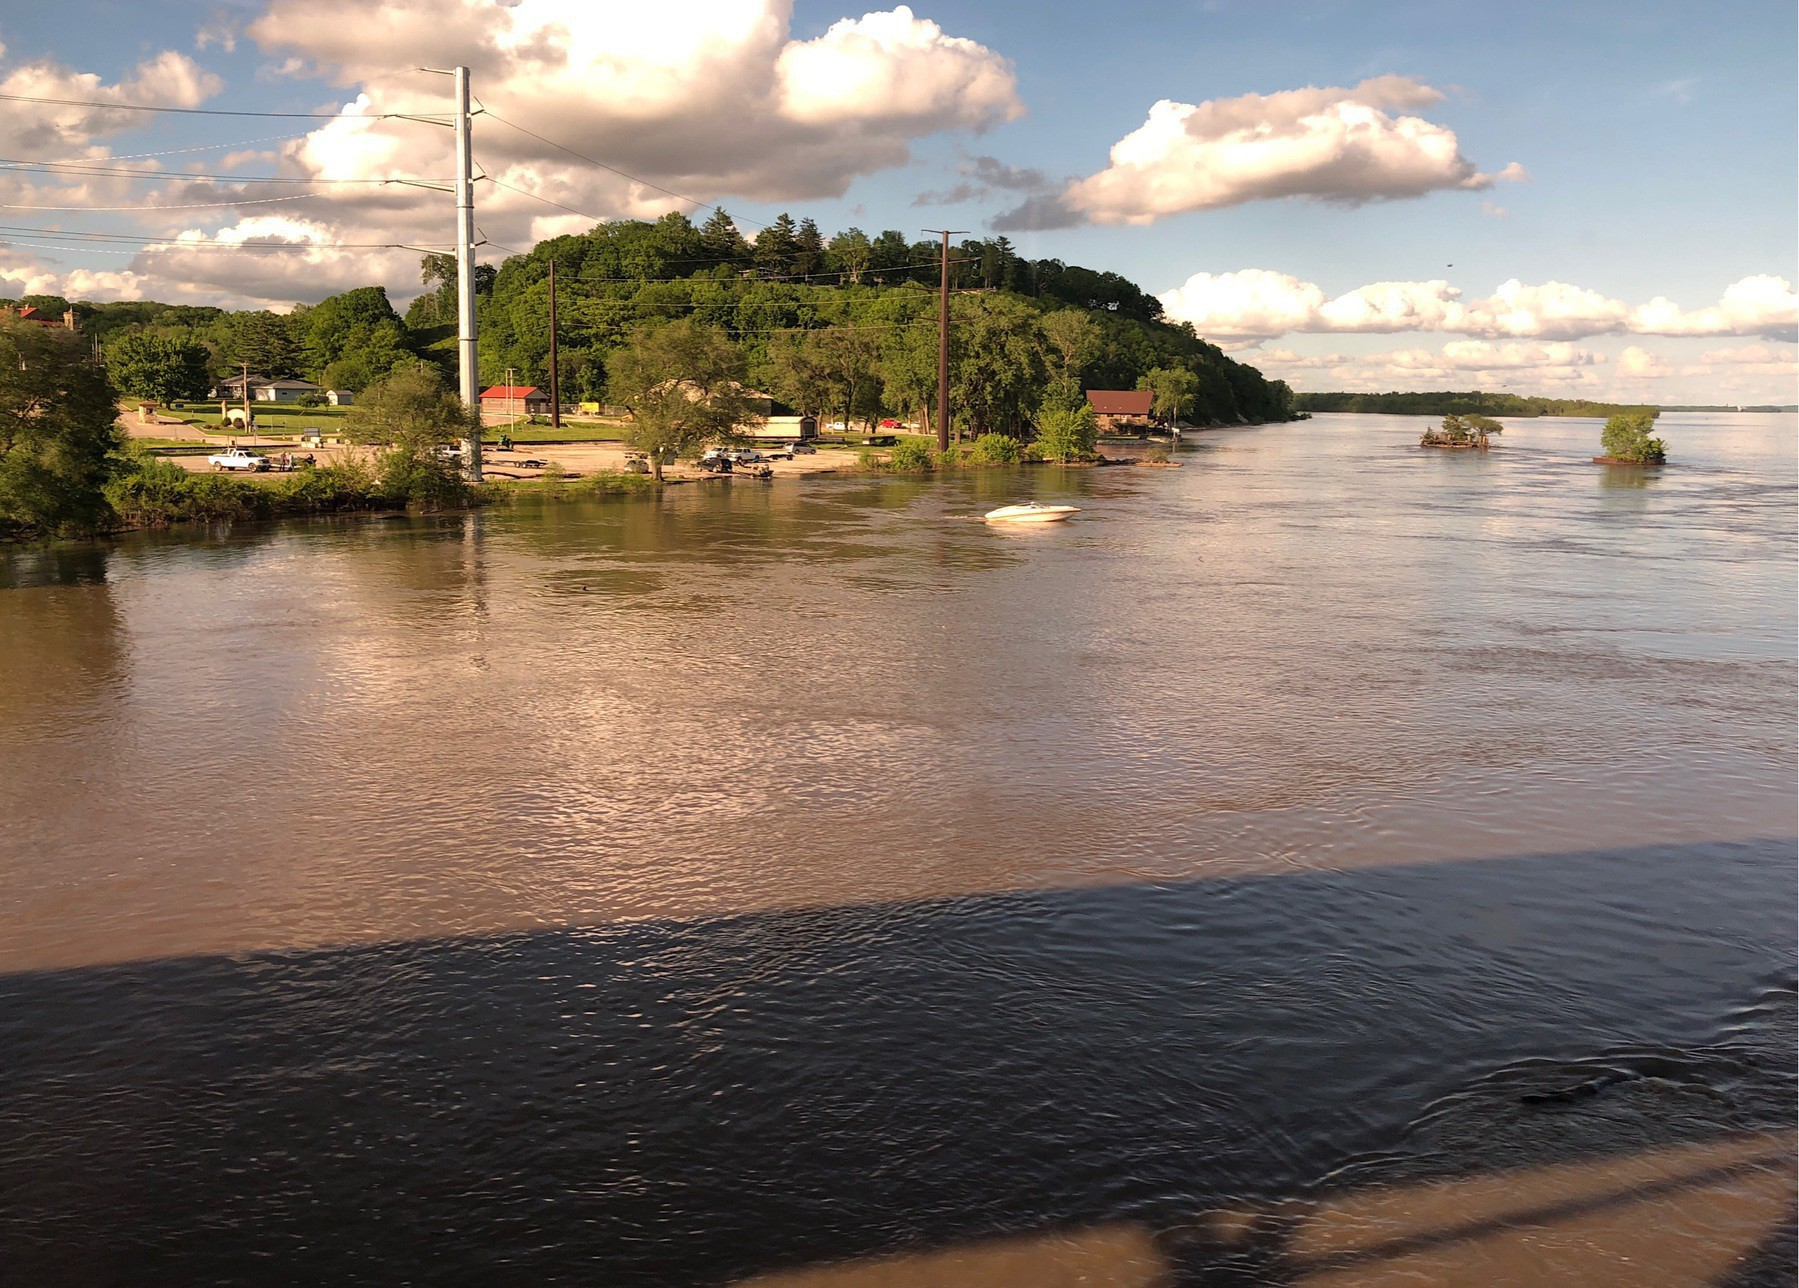 View of Mississippi River from train window